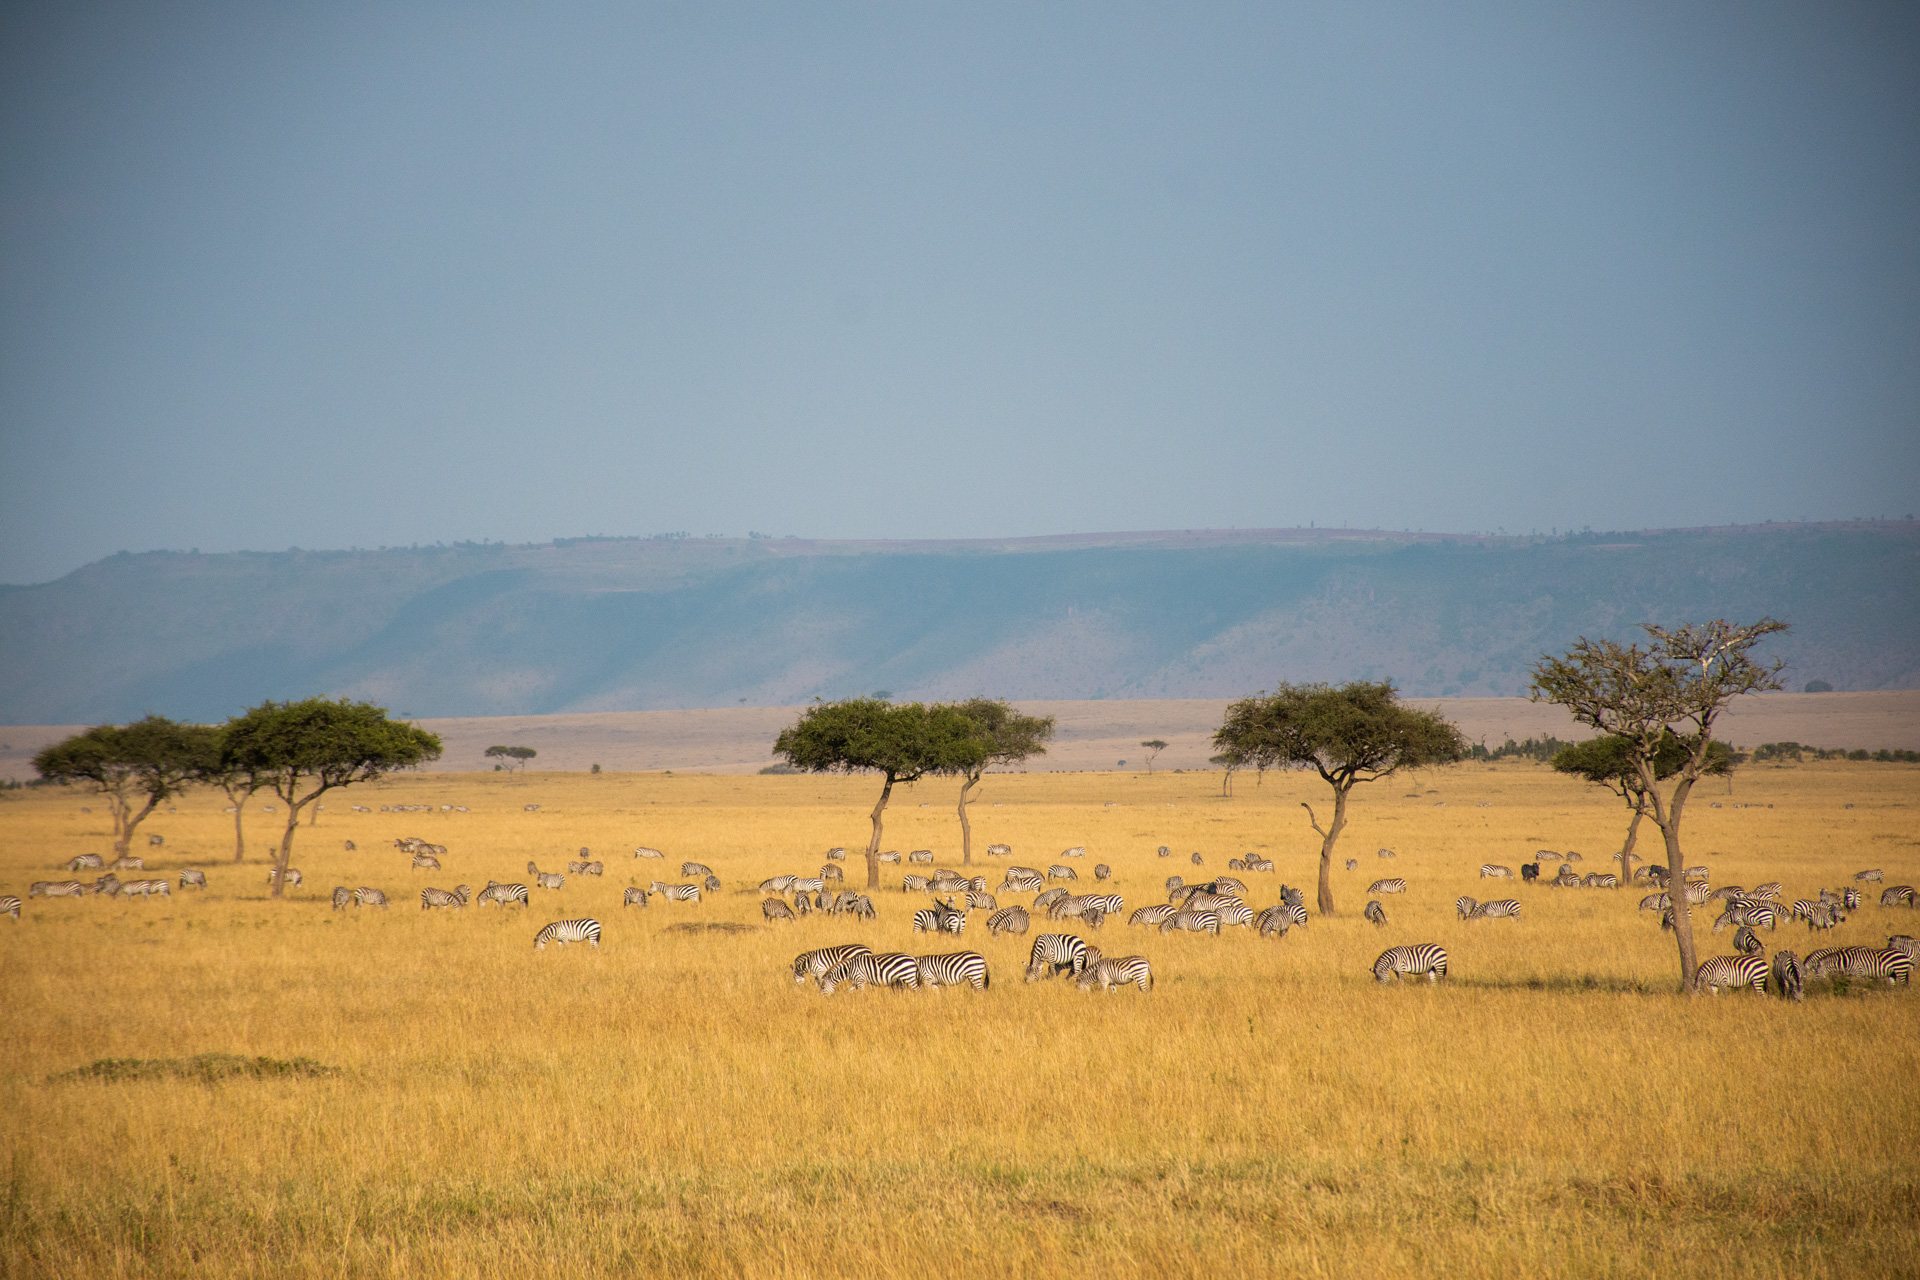 Zebras in the distance